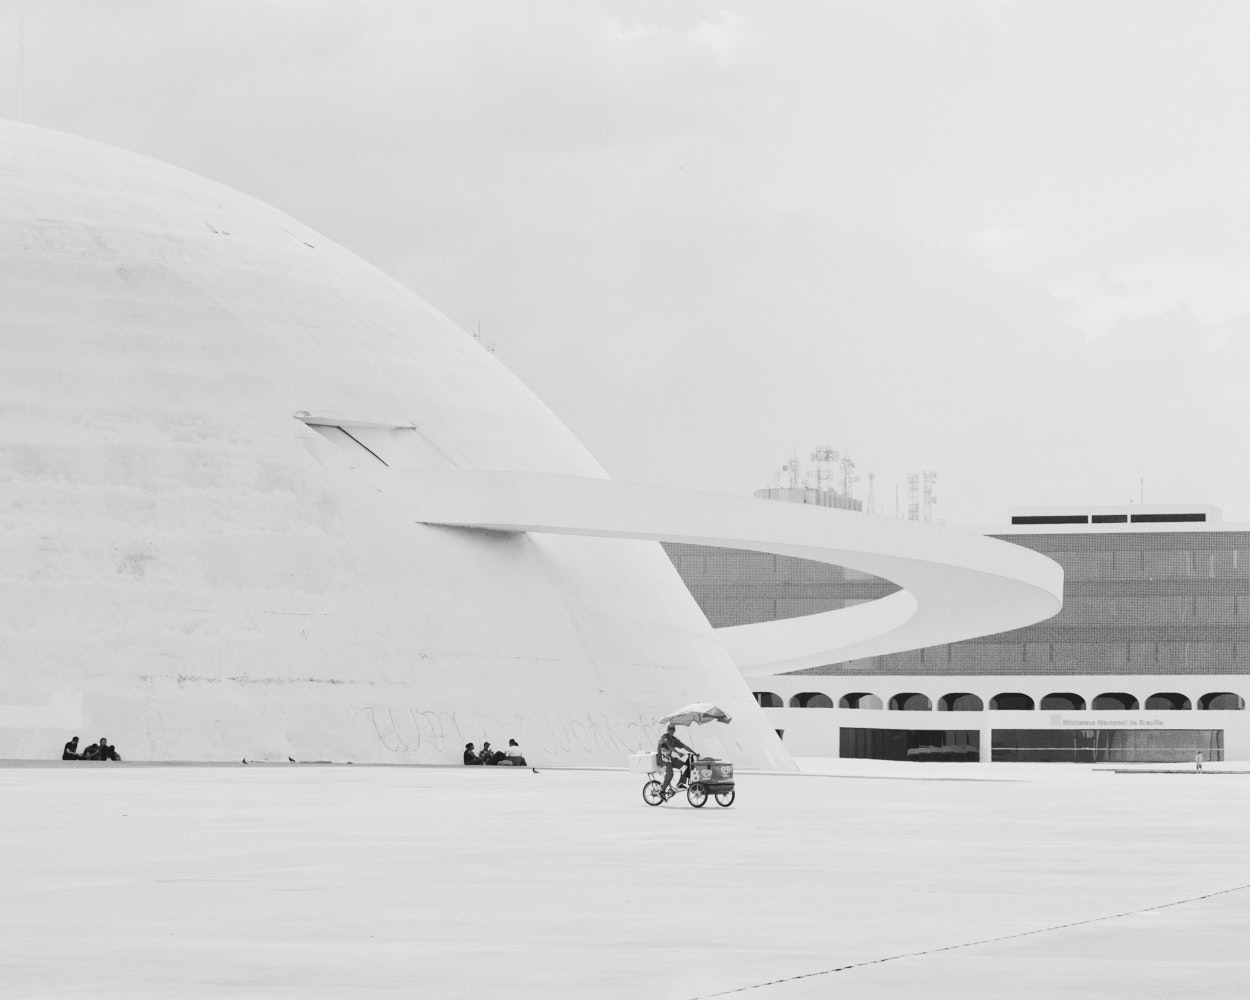 The rotating exhibits inside the National Museum of the Republic in Brasília are reached via a swooping entrance ramp that lends a Space Age look to Niemeyer's domed museum.